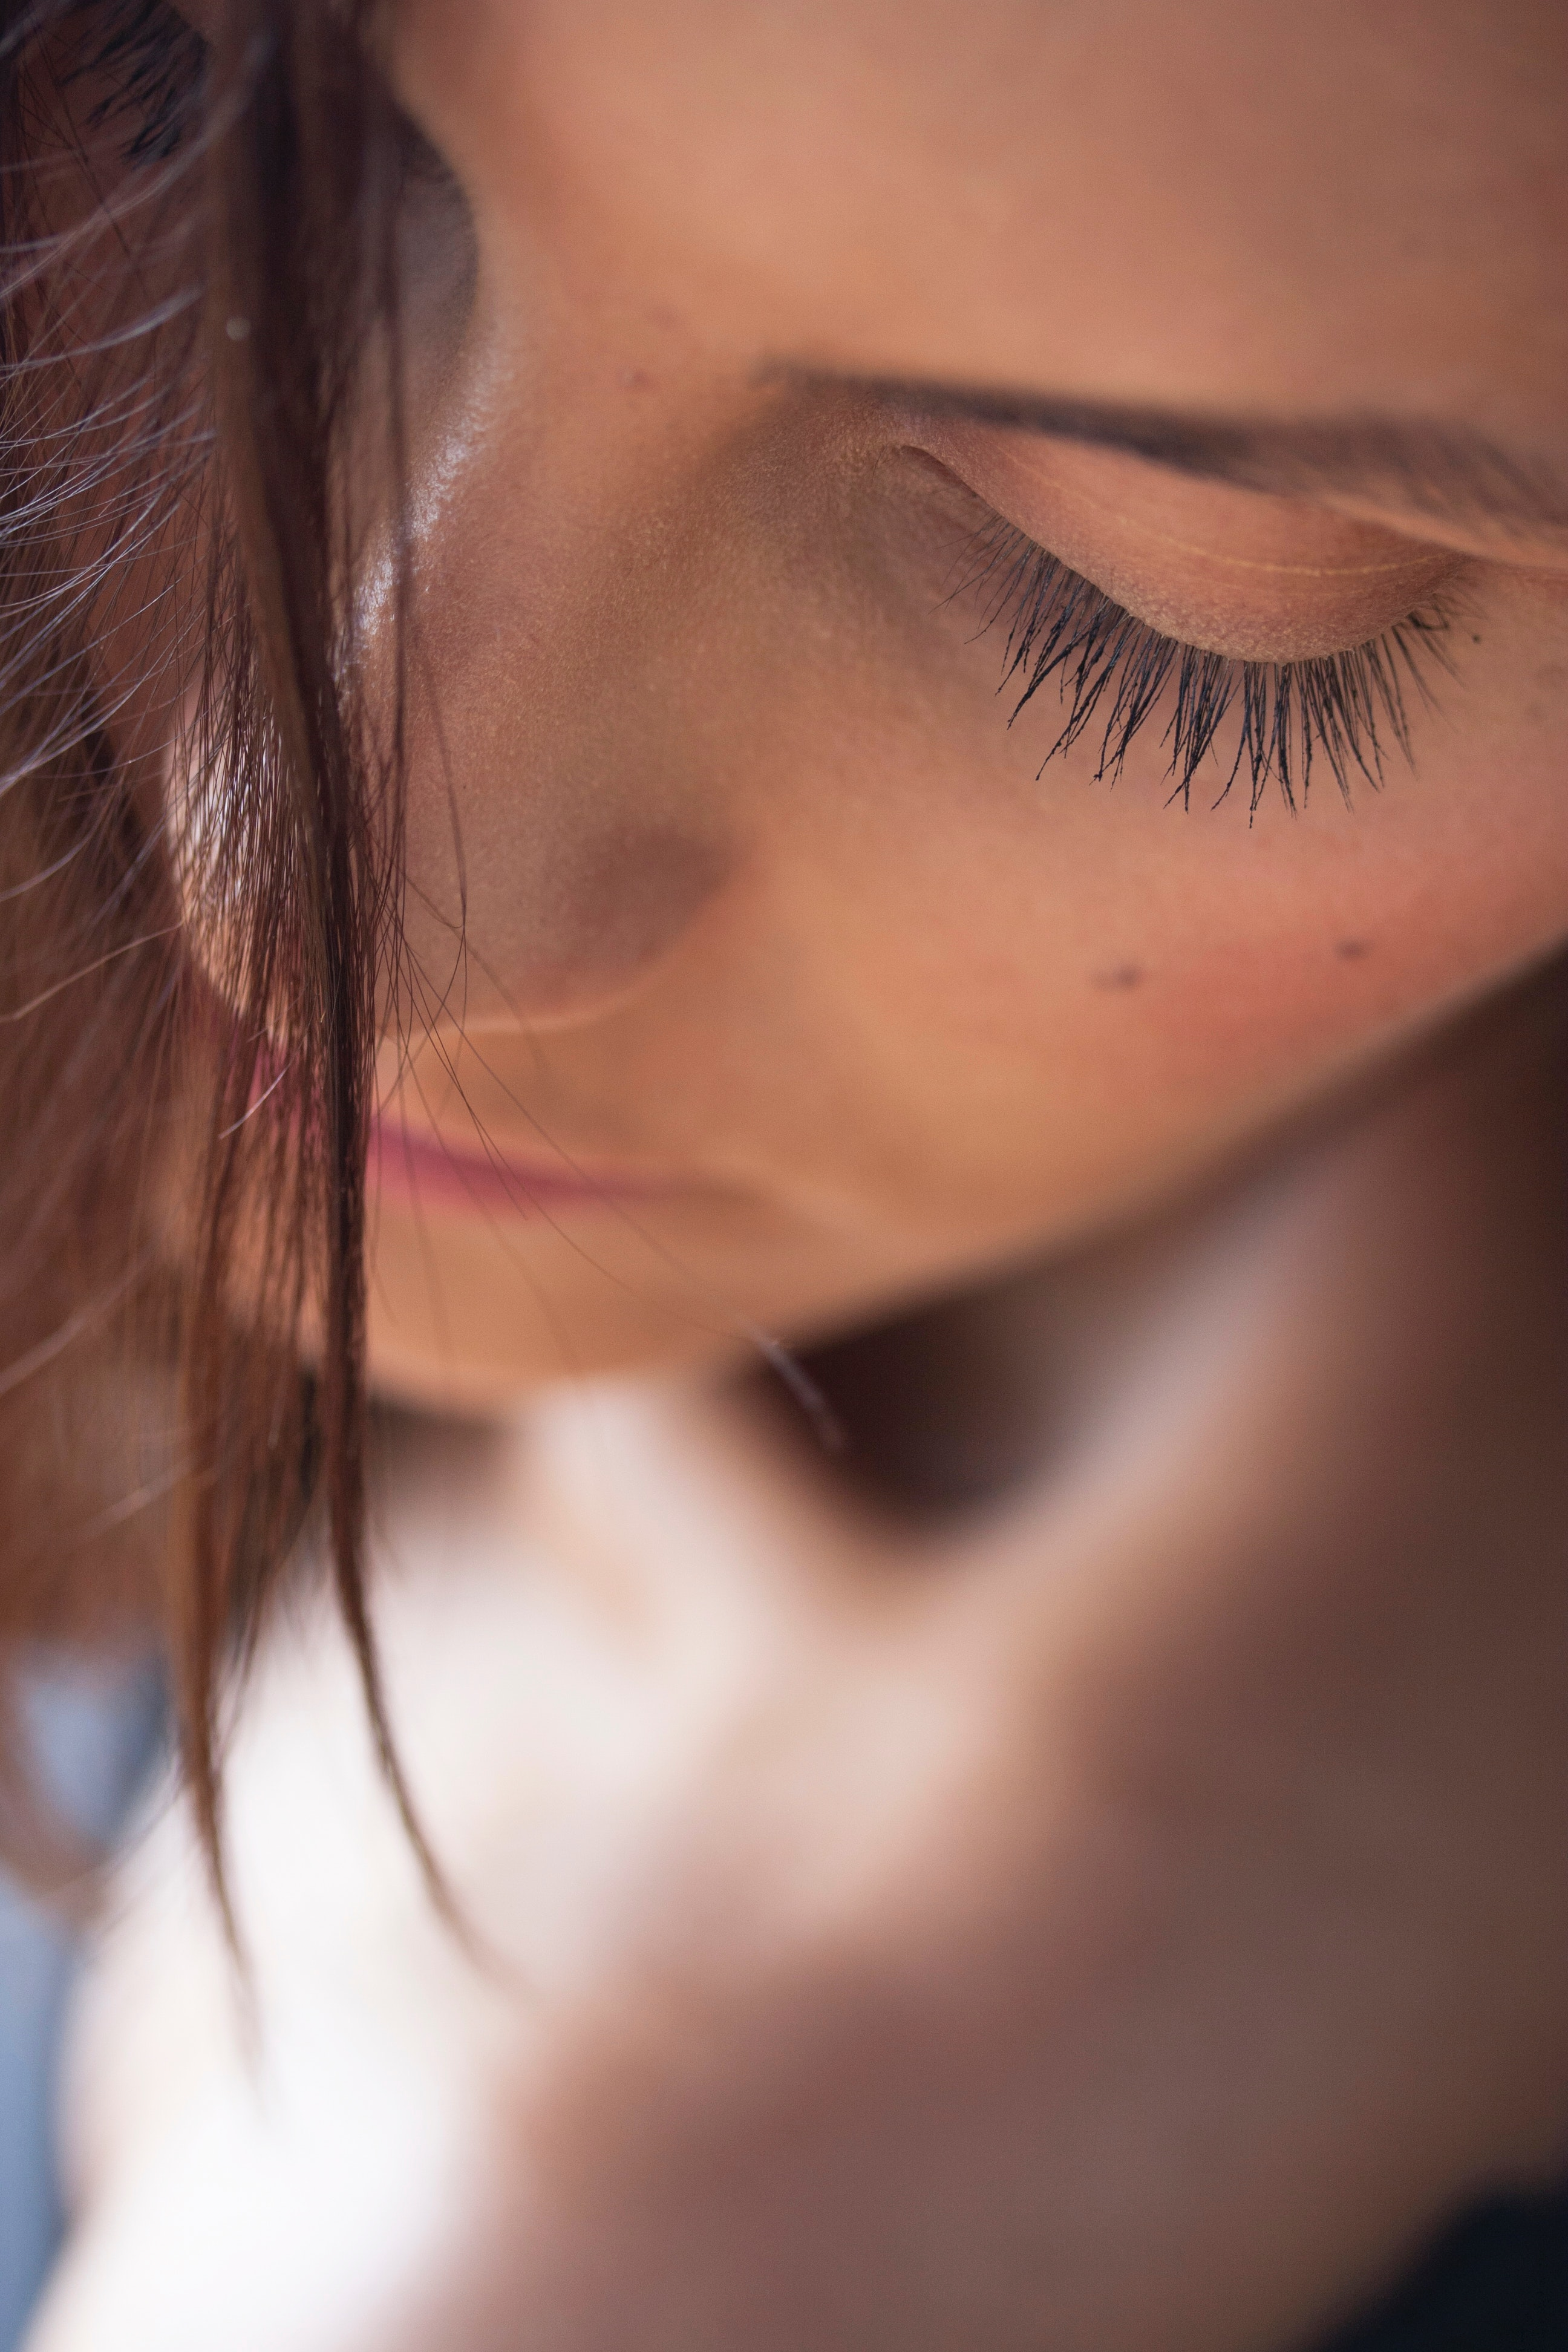 Skip the Falsies: Latisse Lashes Give You Luxurious Length